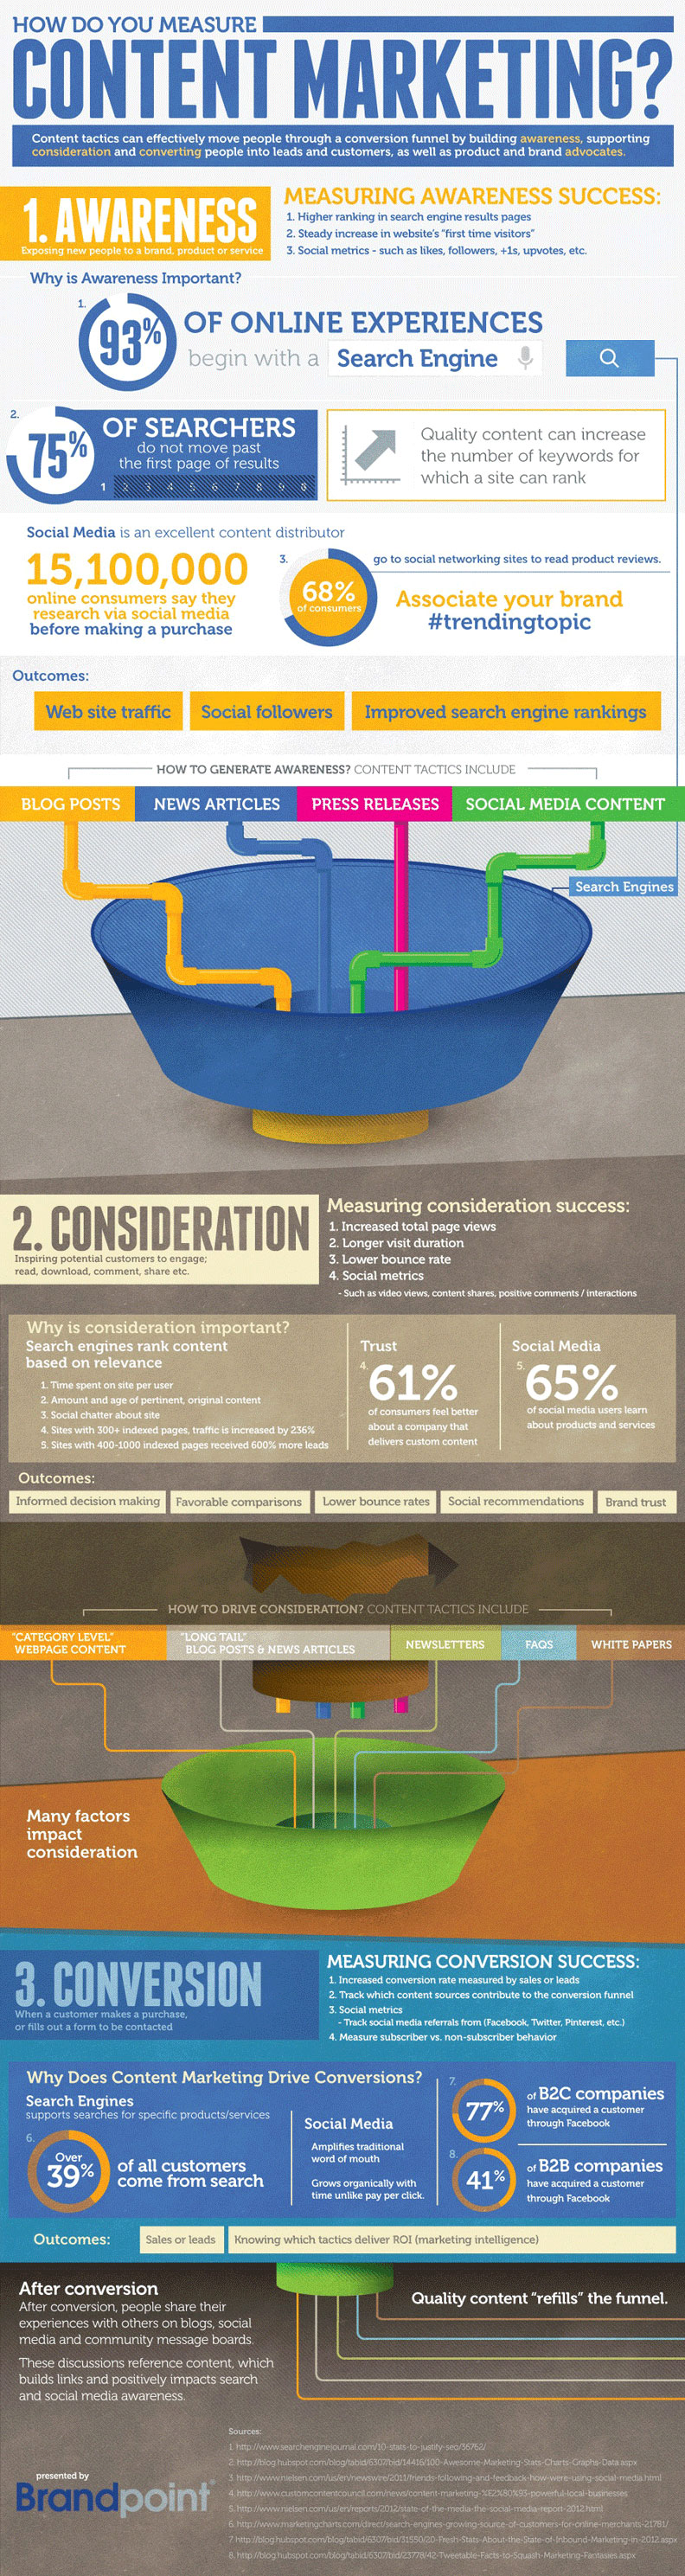 How To Measure Your Content Marketing ROI [Infographic]